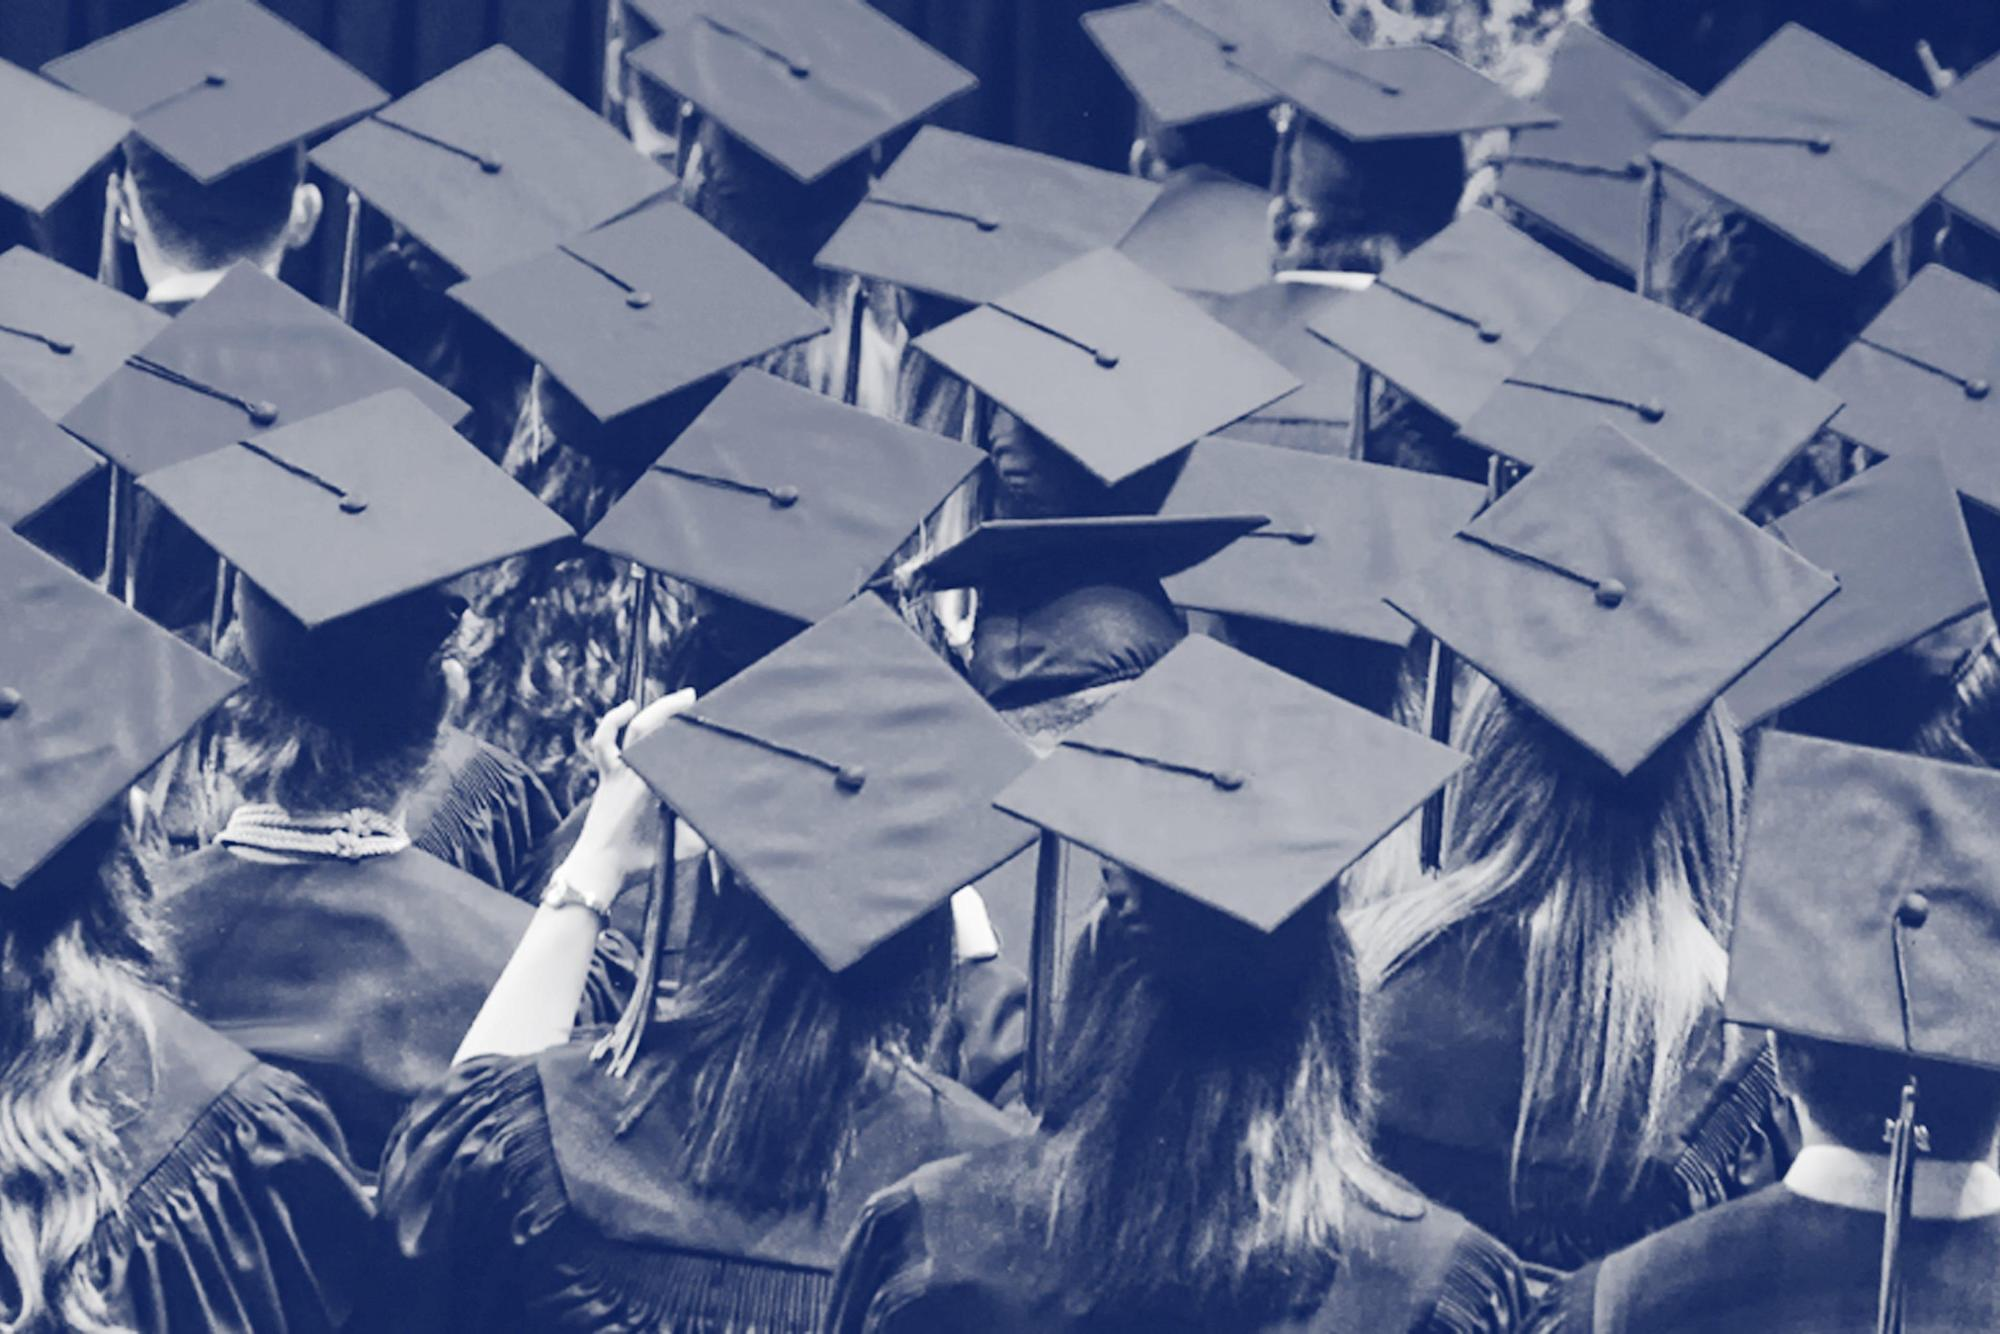 More Student Loan Upheaval: What FedLoan Ending Its Contract Means for Borrowers